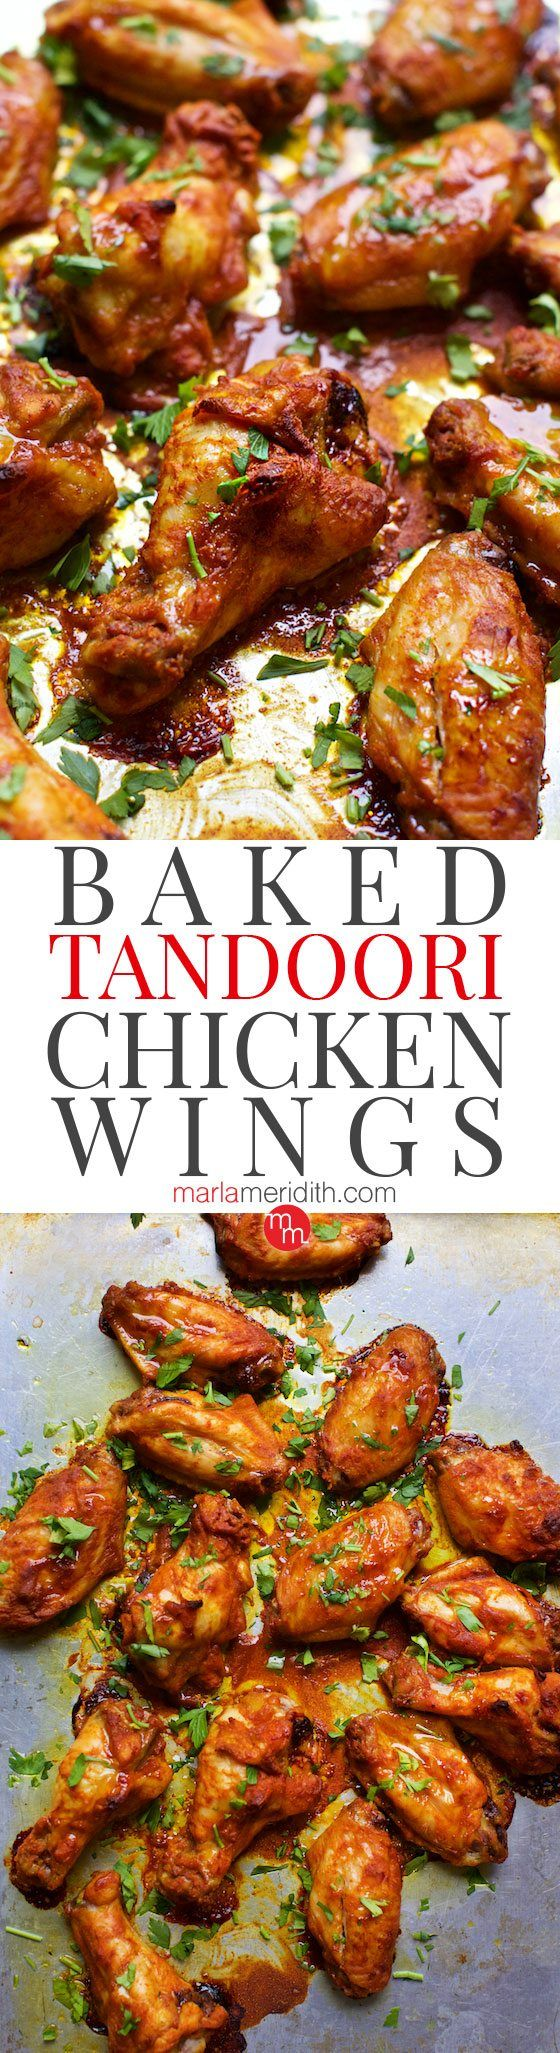 Baked Tandoori Chicken Wings are a super flavorful appetizer! Get the #recipe at MarlaMeridith.com ( @Marla Meridith )